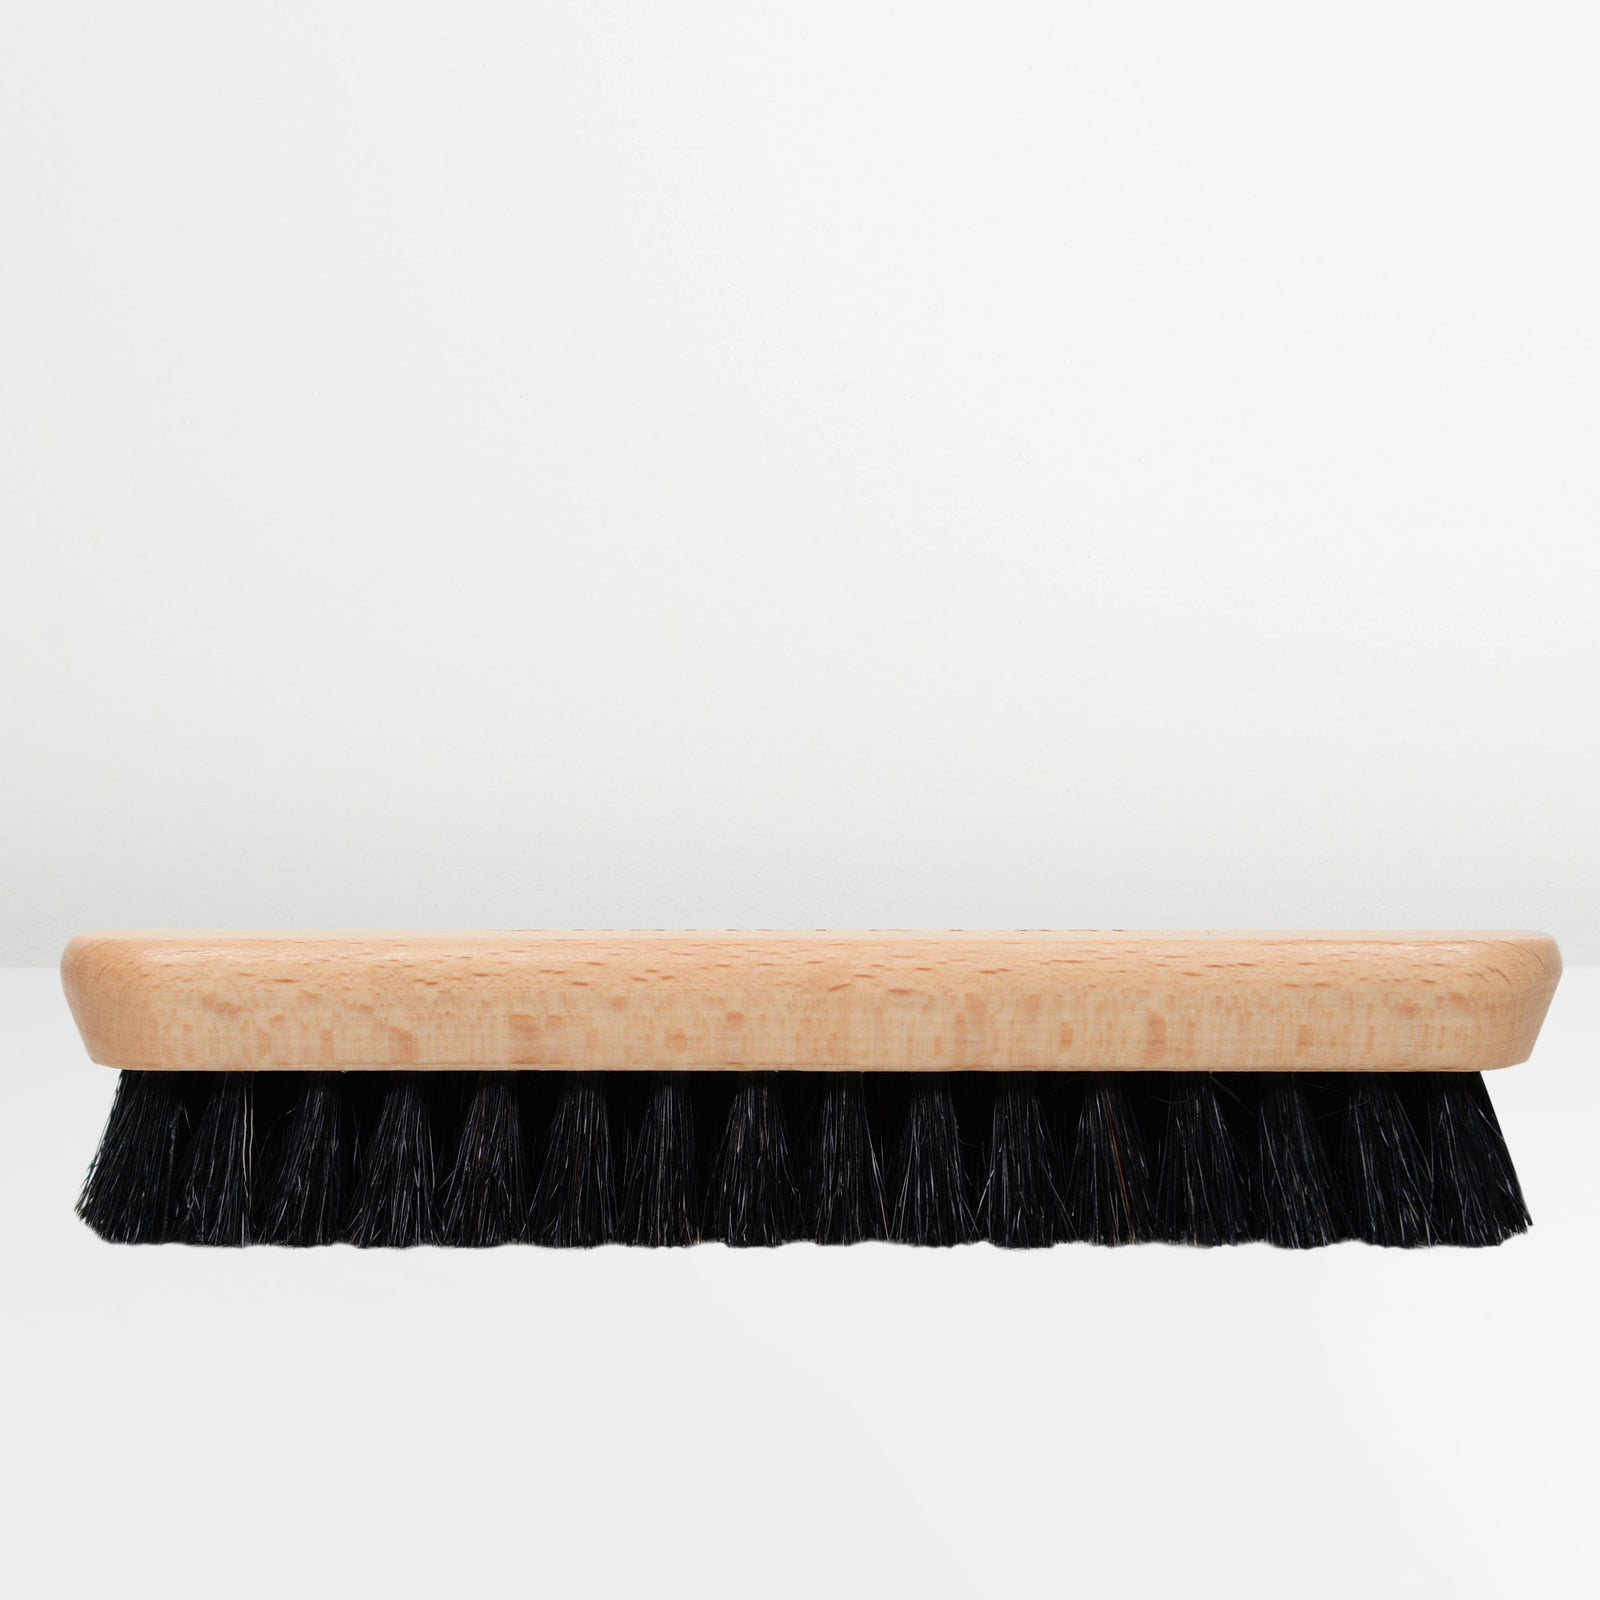 Black Beech Polishing Brush